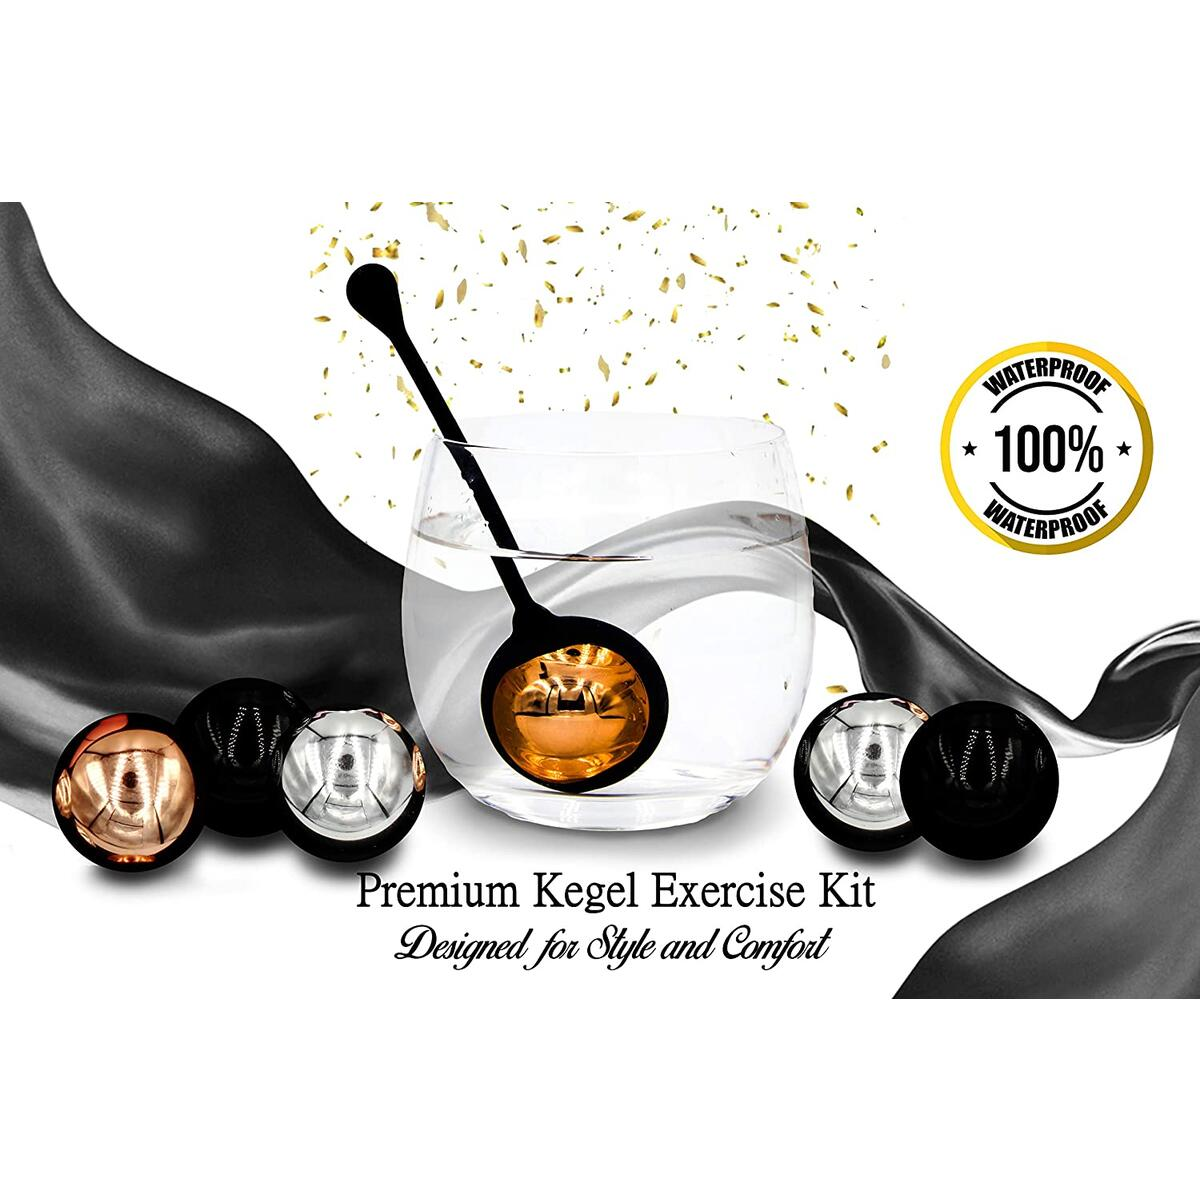 Zen Q Ben Wa Balls for Women Six Premium Kegel Balls for Tightening Doctor Recommended Kegel Exercise Products for Bladder Control Pelvic Floor Weights for Beginners and Pros Benwa Kegal Balls Keigle